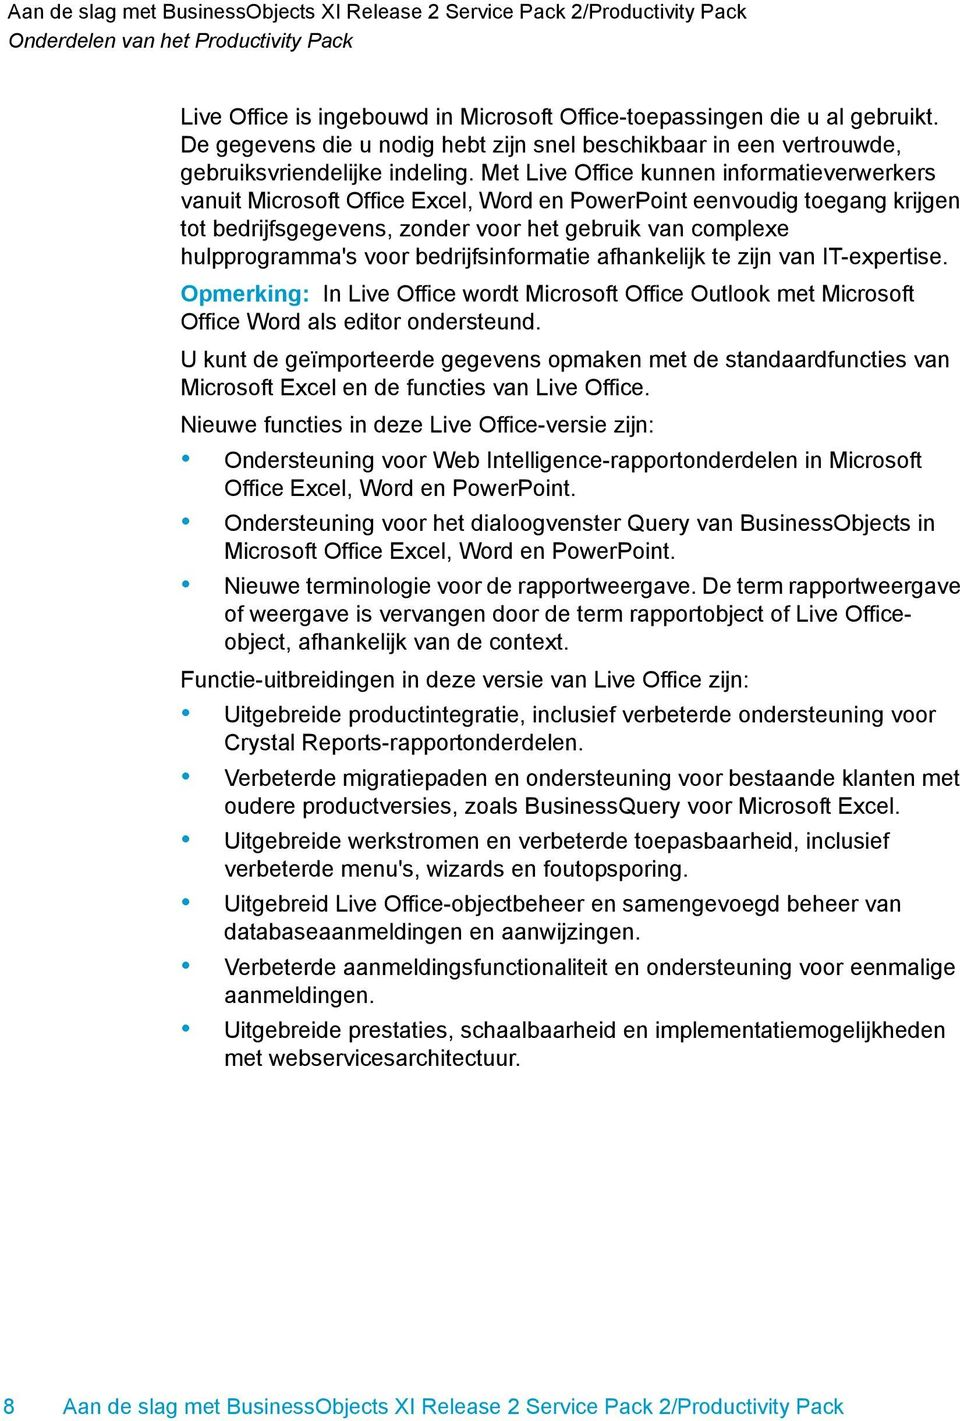 bedrijfsinformatie afhankelijk te zijn van IT-expertise. Opmerking: In Live Office wordt Microsoft Office Outlook met Microsoft Office Word als editor ondersteund.